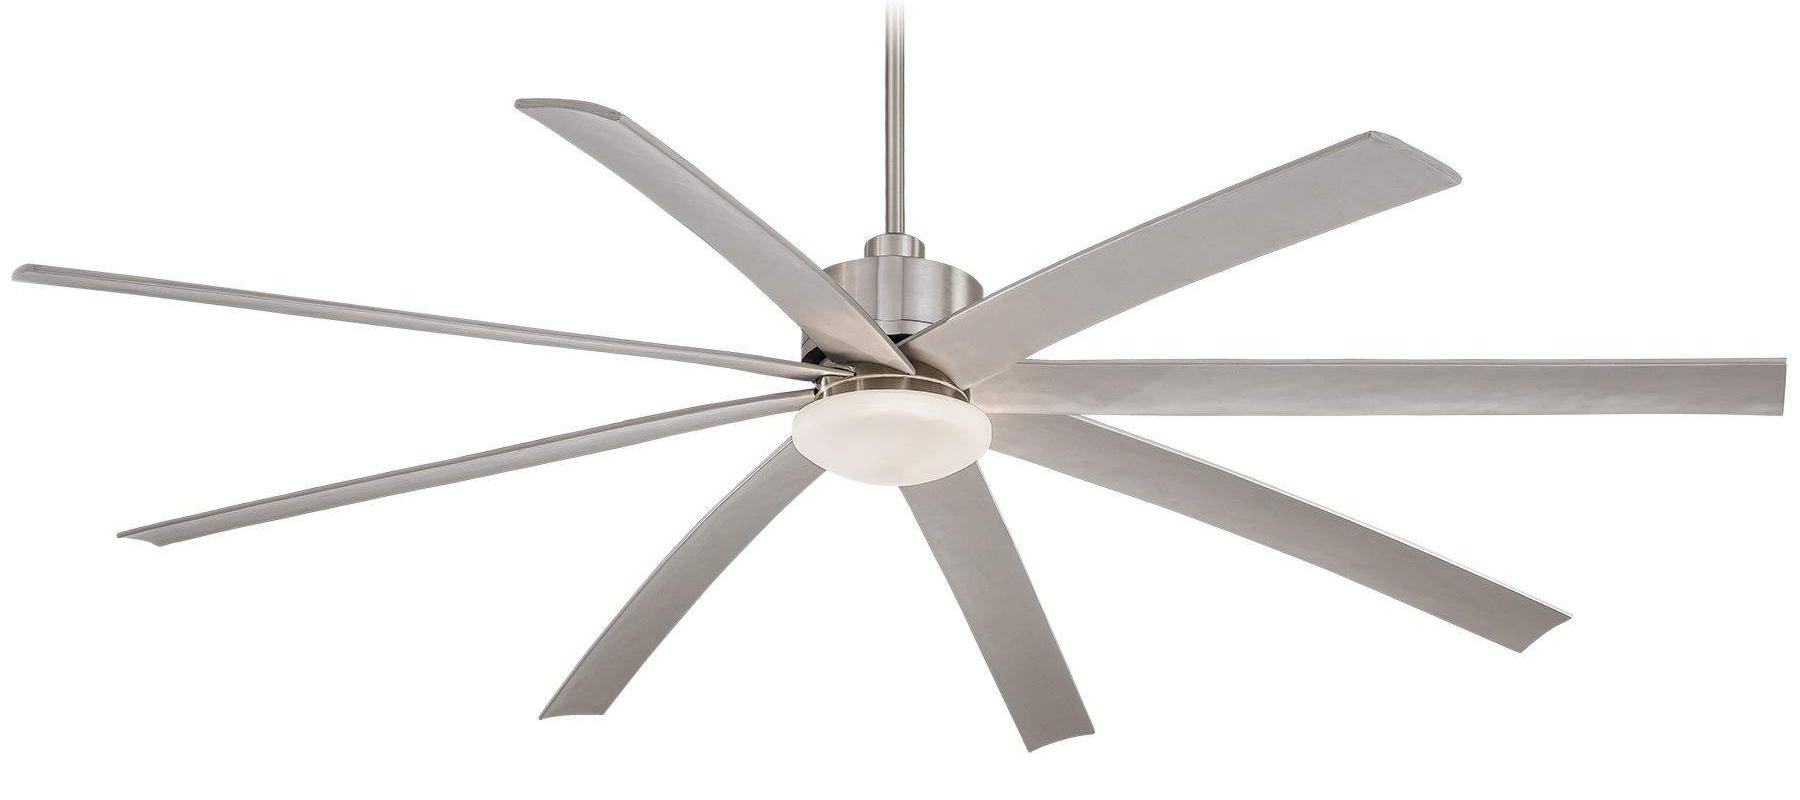 8 Foot Ceiling Fans